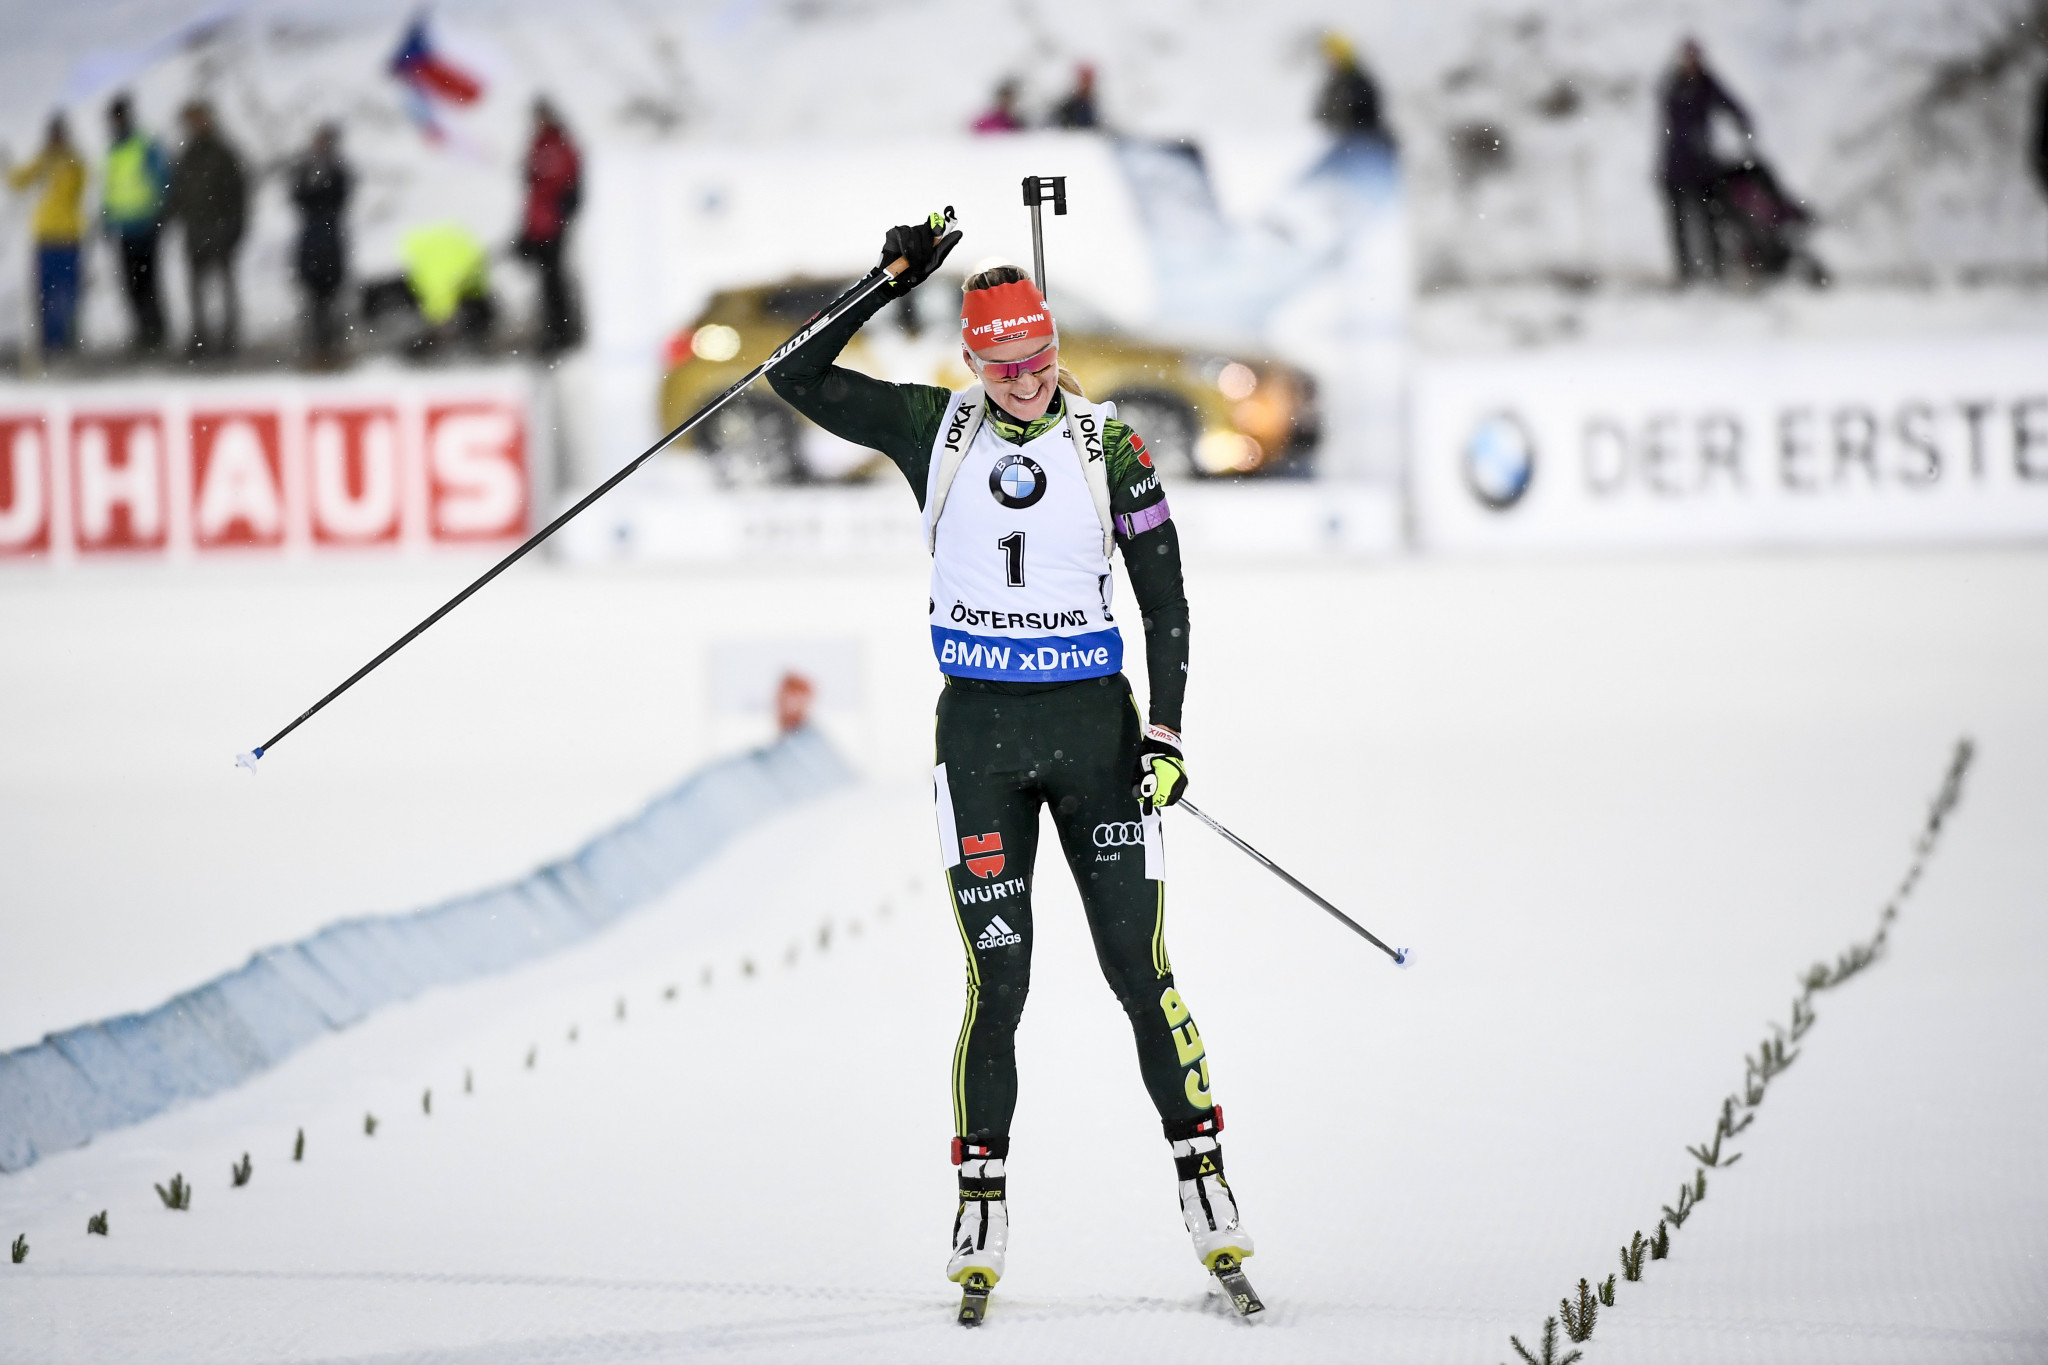 Olympic cross-country skiing bronze medallist Denise Herrmann of Germany will aim to secure a third straight victory following two wins in the season opener in Östersund ©Getty Imahes